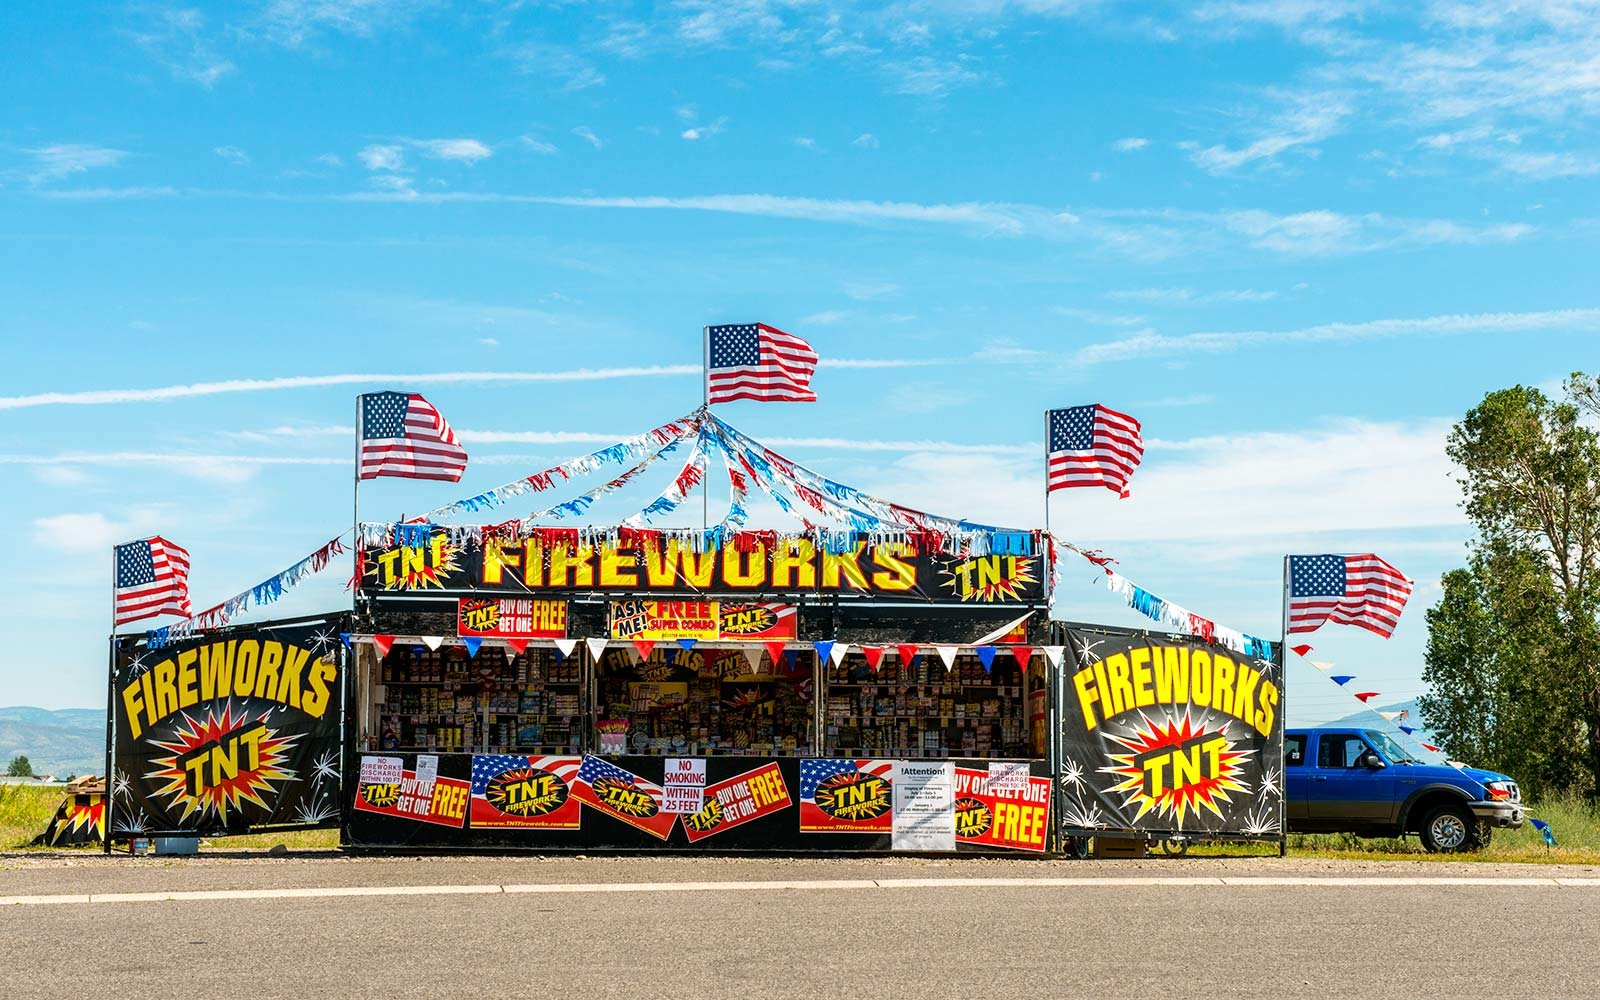 July 4th holiday, a fireworks stand is open for business on the side of the road. American flags decorate the stand which boldly advertises TNT and Fireworks